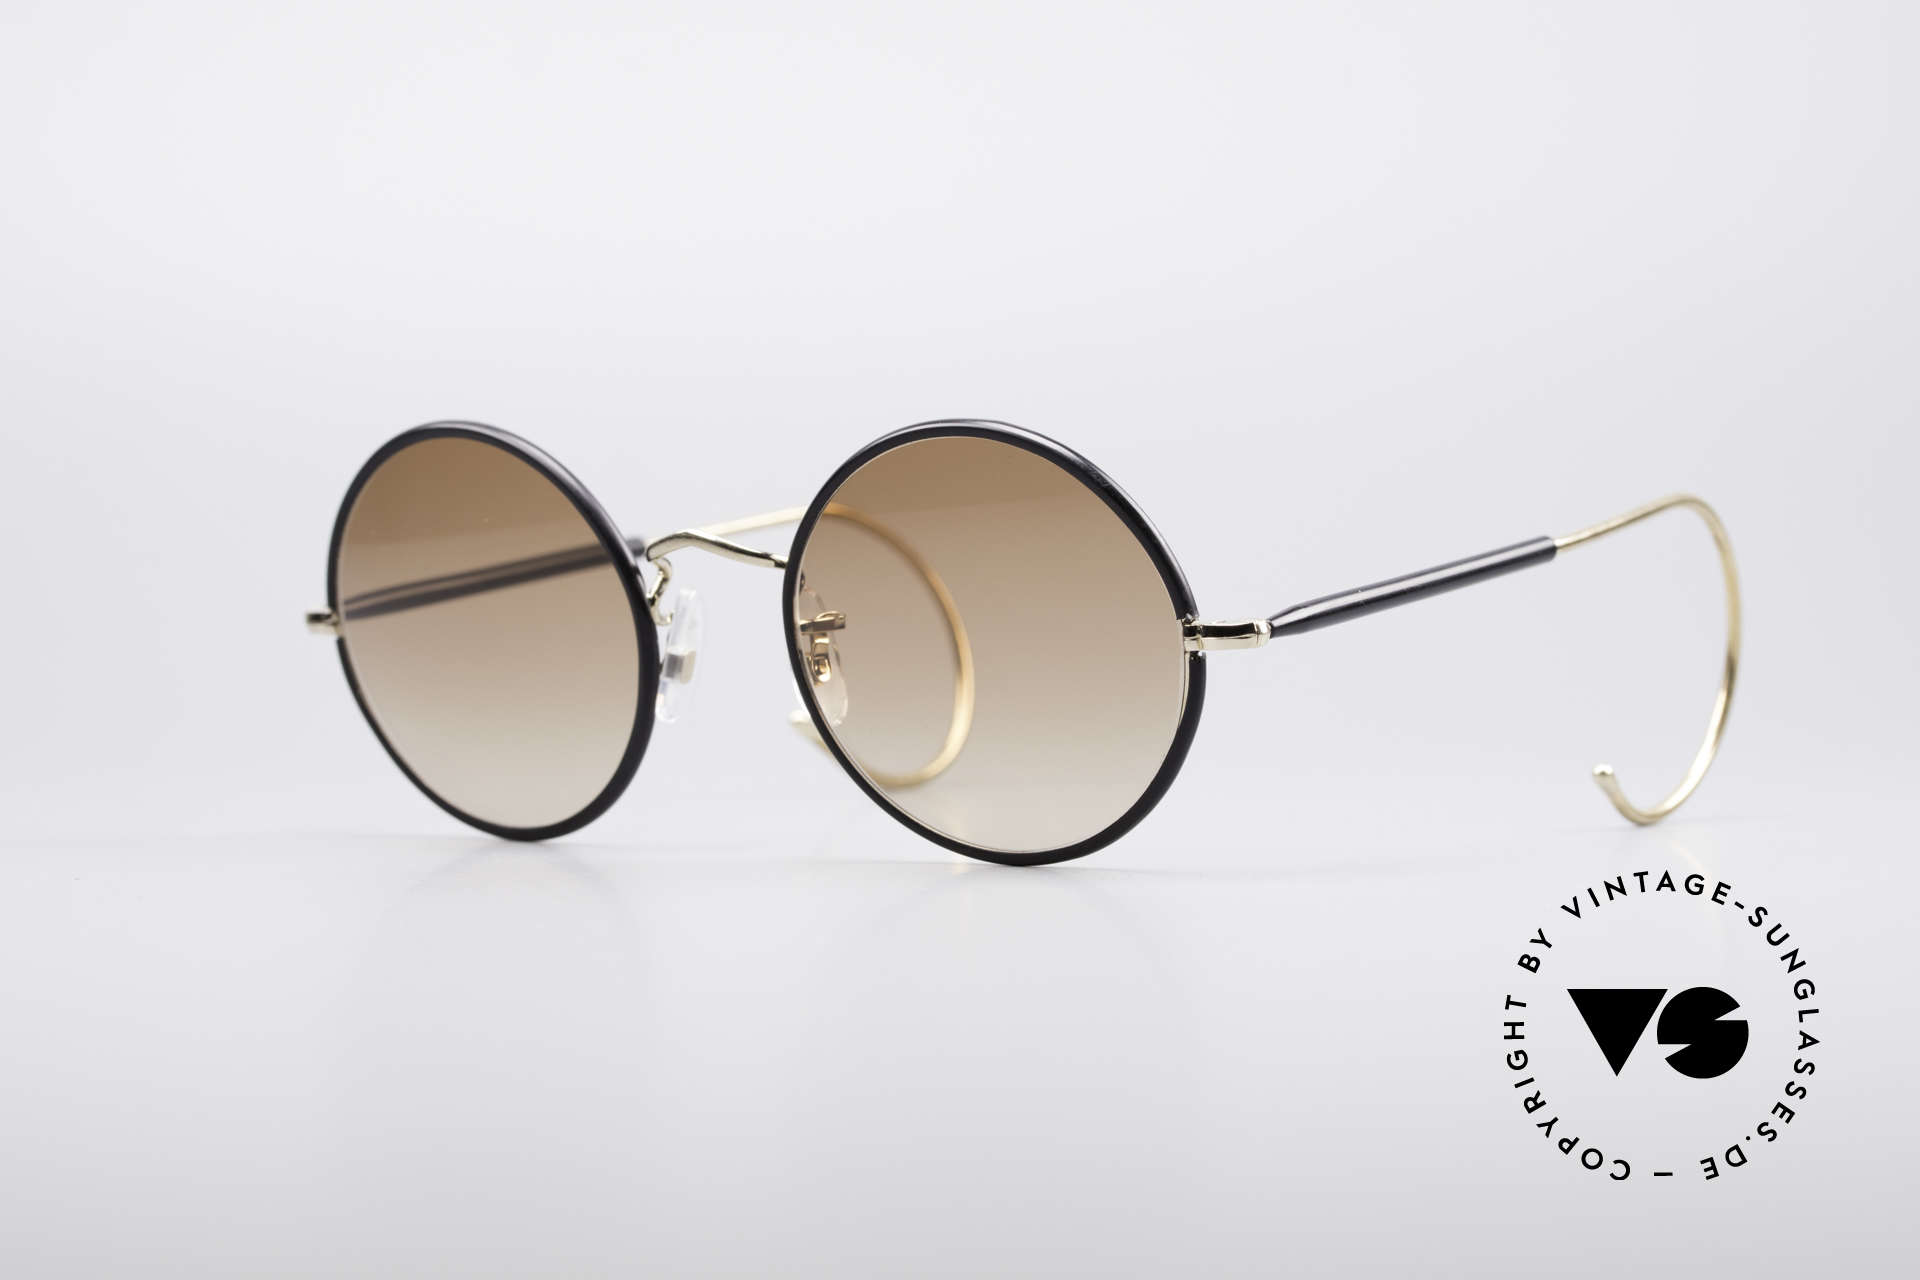 Savile Row Round 47/20 Harry Potter Glasses, 'The Savile Row Collection' by ALGHA, UK OPTICAL, Made for Men